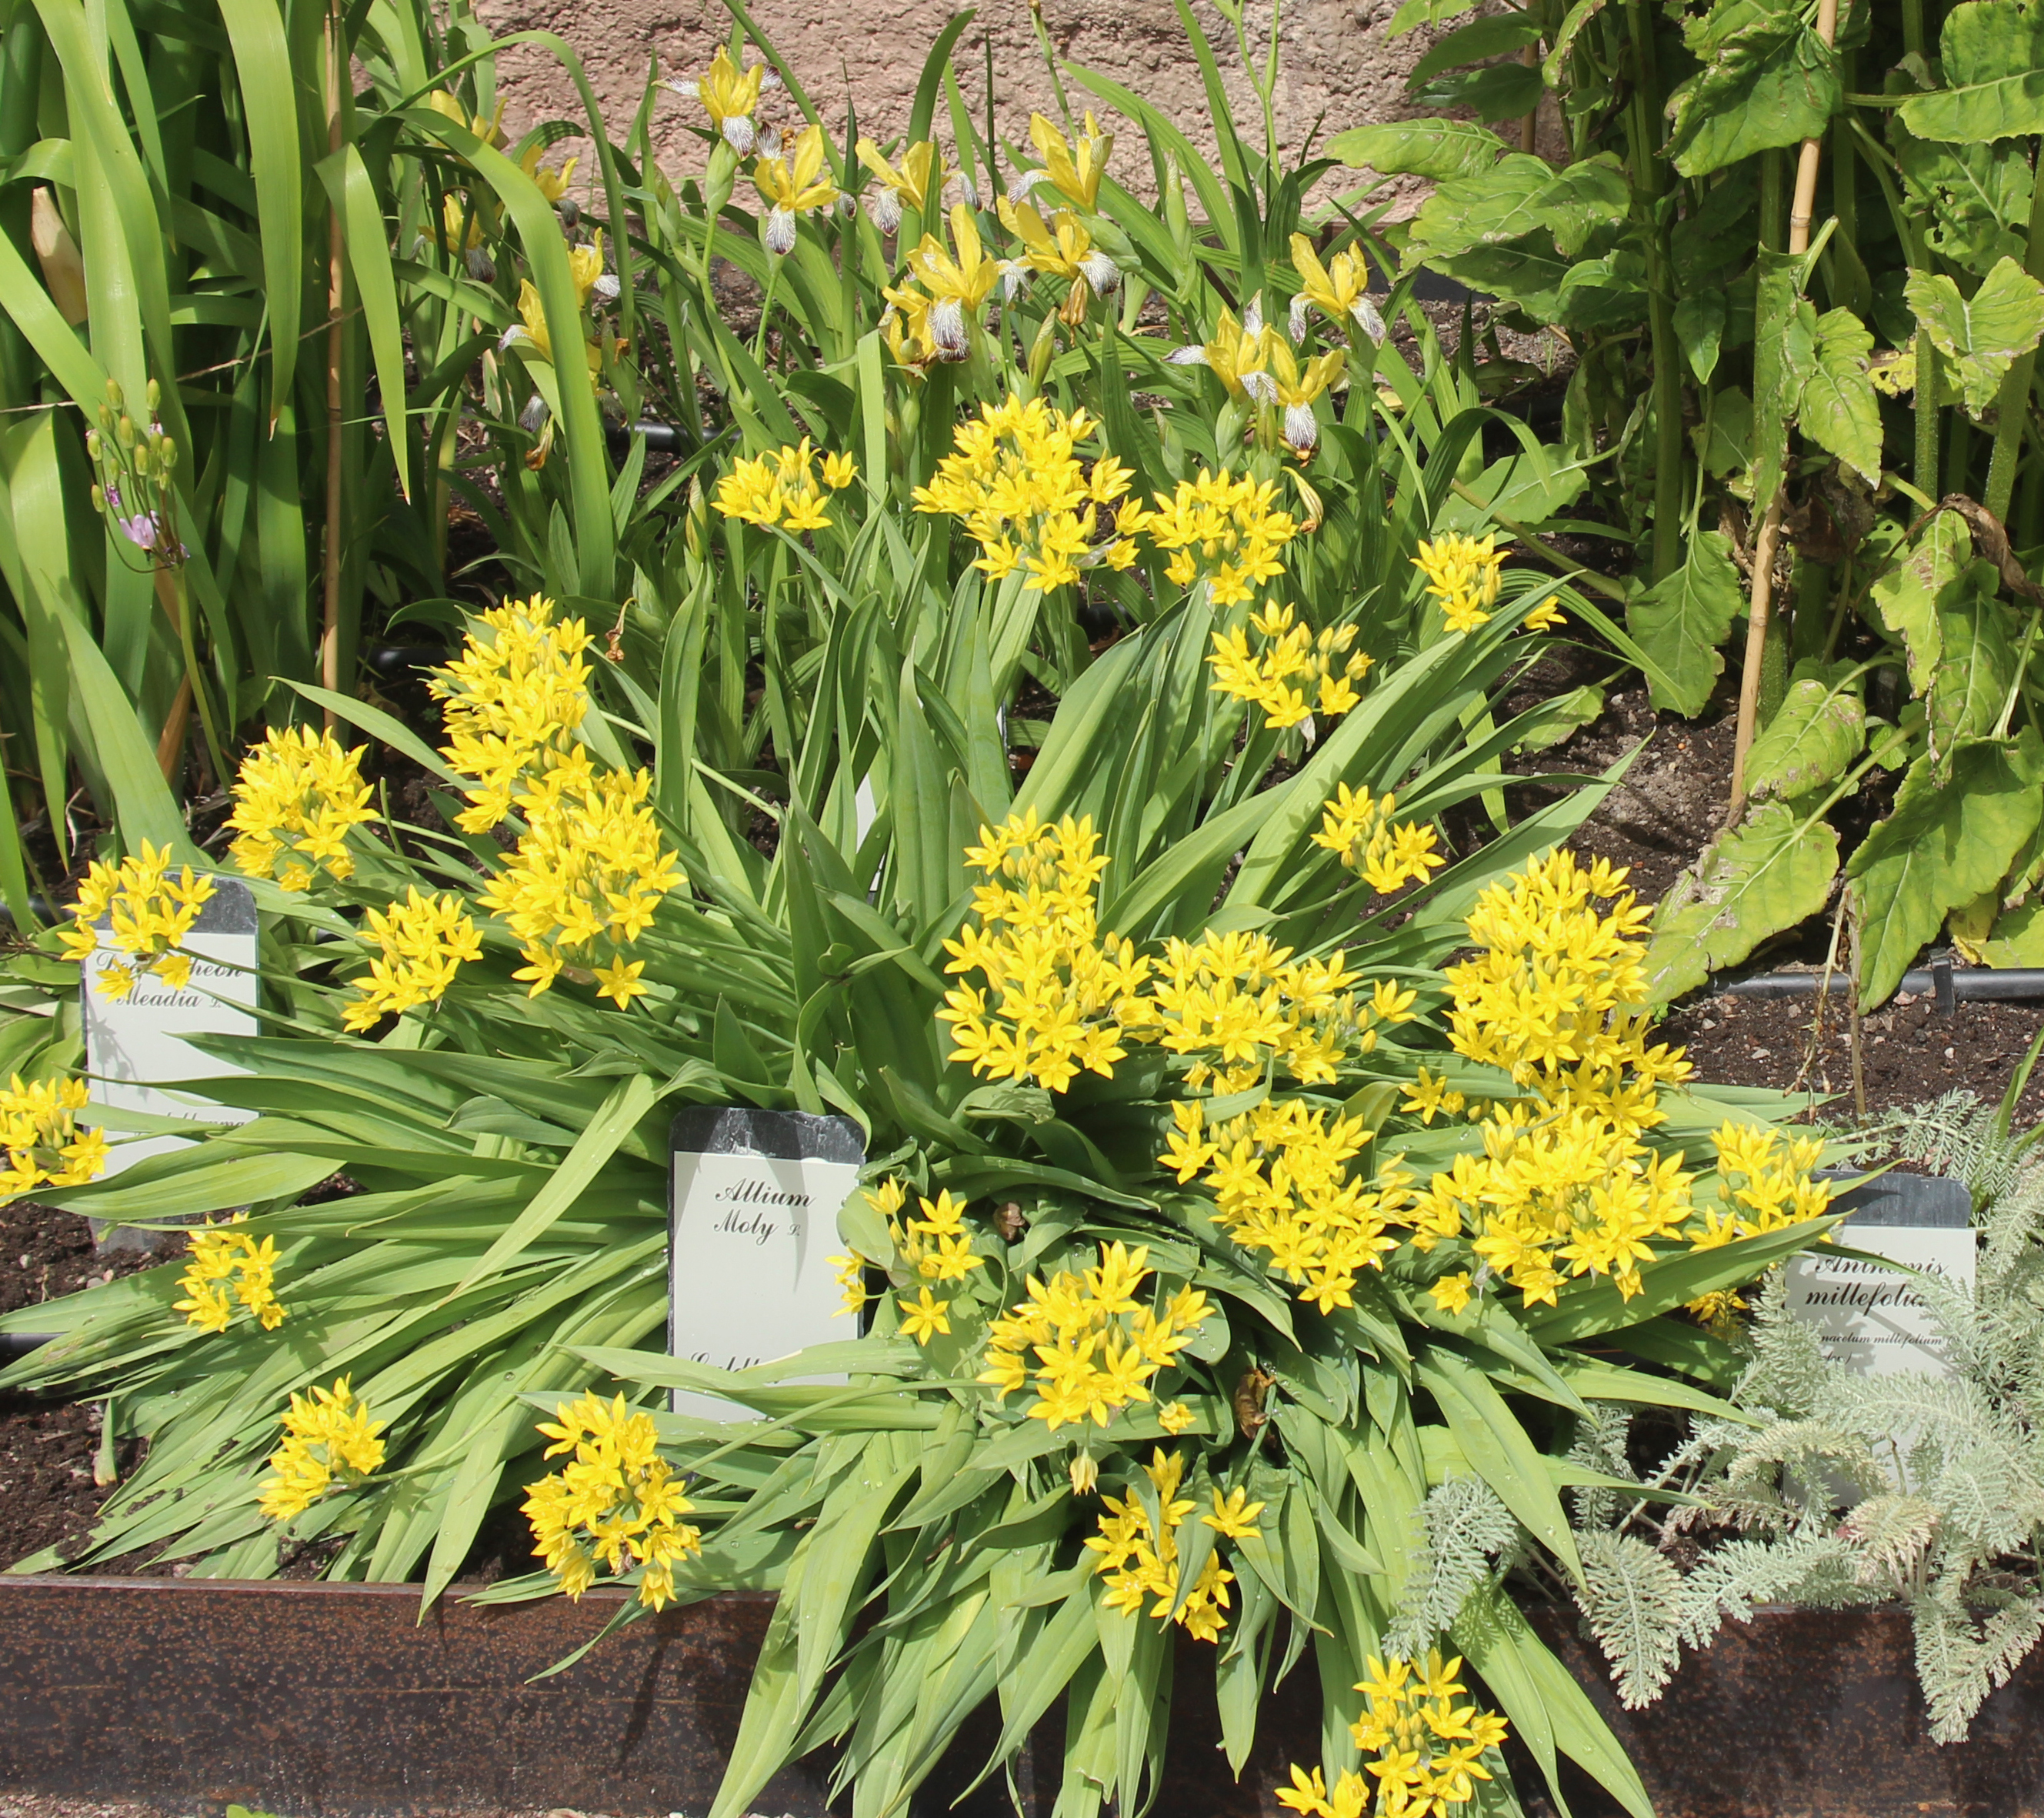 A plant of Golden Garlic, Allium moly, full of yellow bloom, in a flowerbed in front of a stone wall. Around it are other plants, among them a yellow iris. A few slate signs, with the scientific names following Linnaeus' system, are stuck in the soil. Foto Jesper Kårehed, Uppsala University.